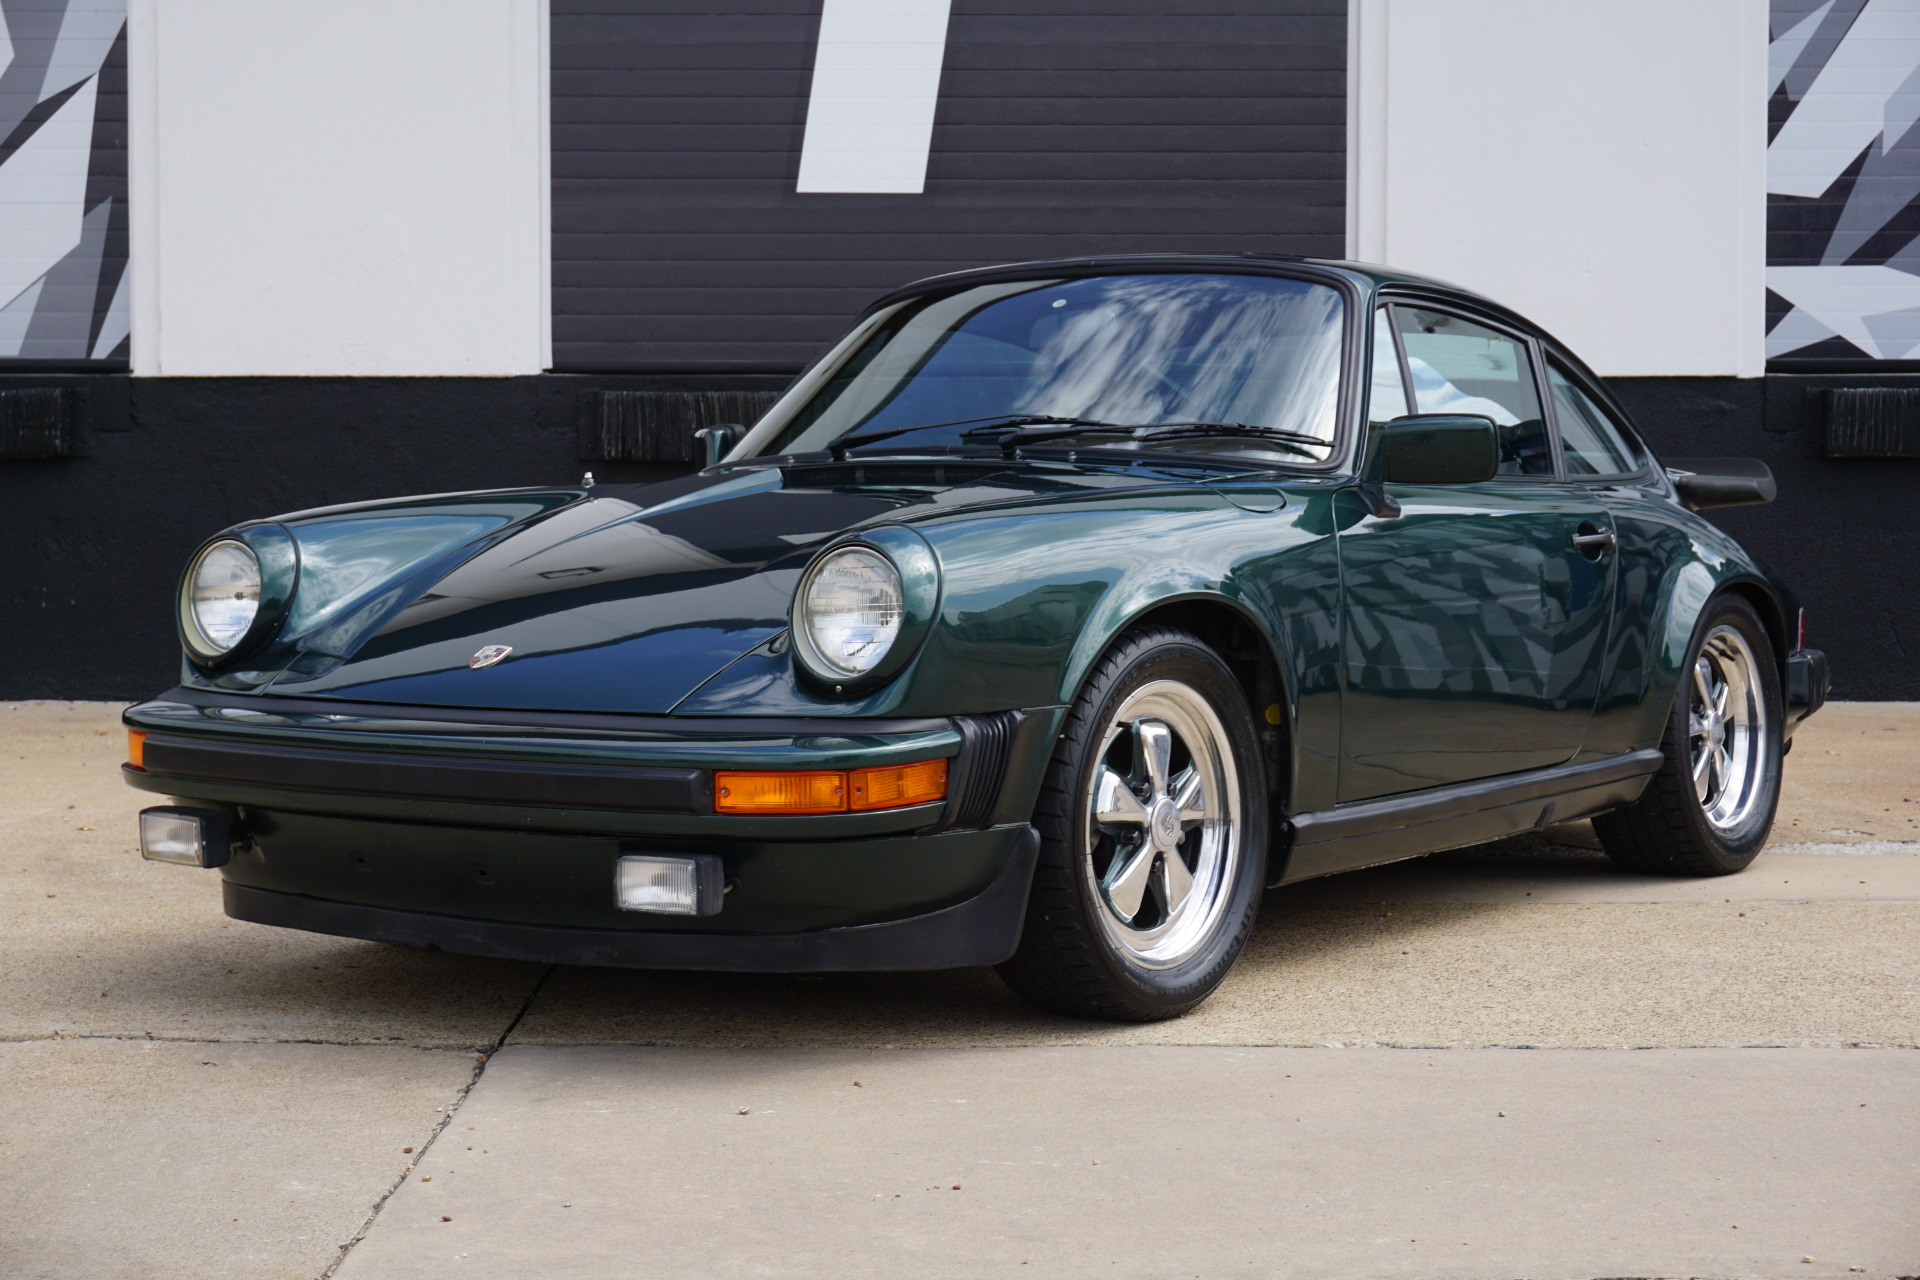 Used 1981 Porsche 911 Sc For Sale 54 900 Tactical Fleet Stock Tf1302